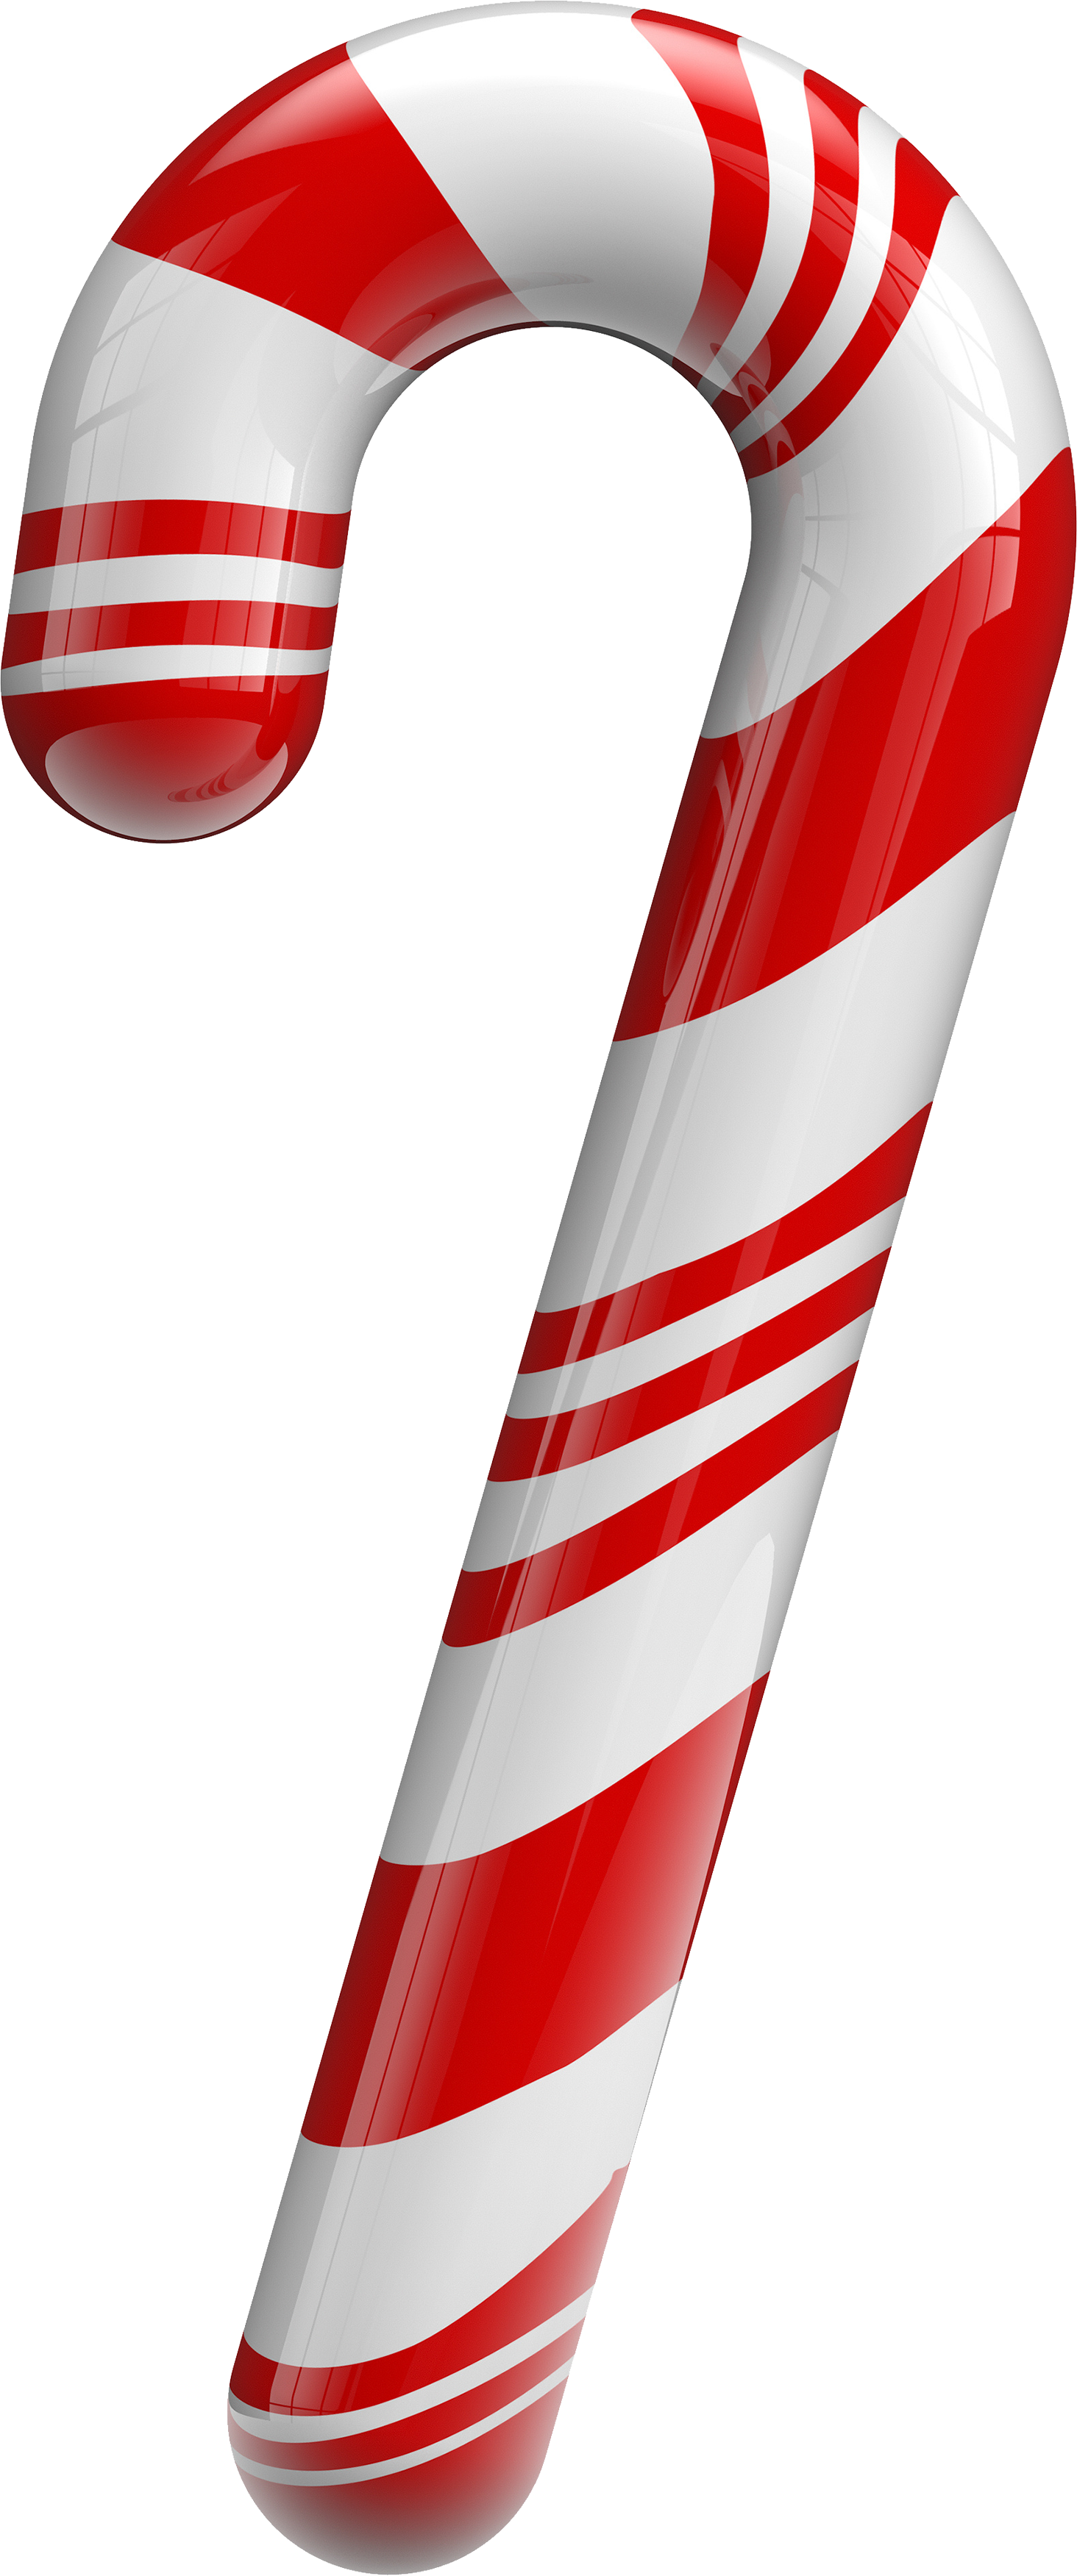 Lollipop clipart holiday candy. Cane clip art christmas